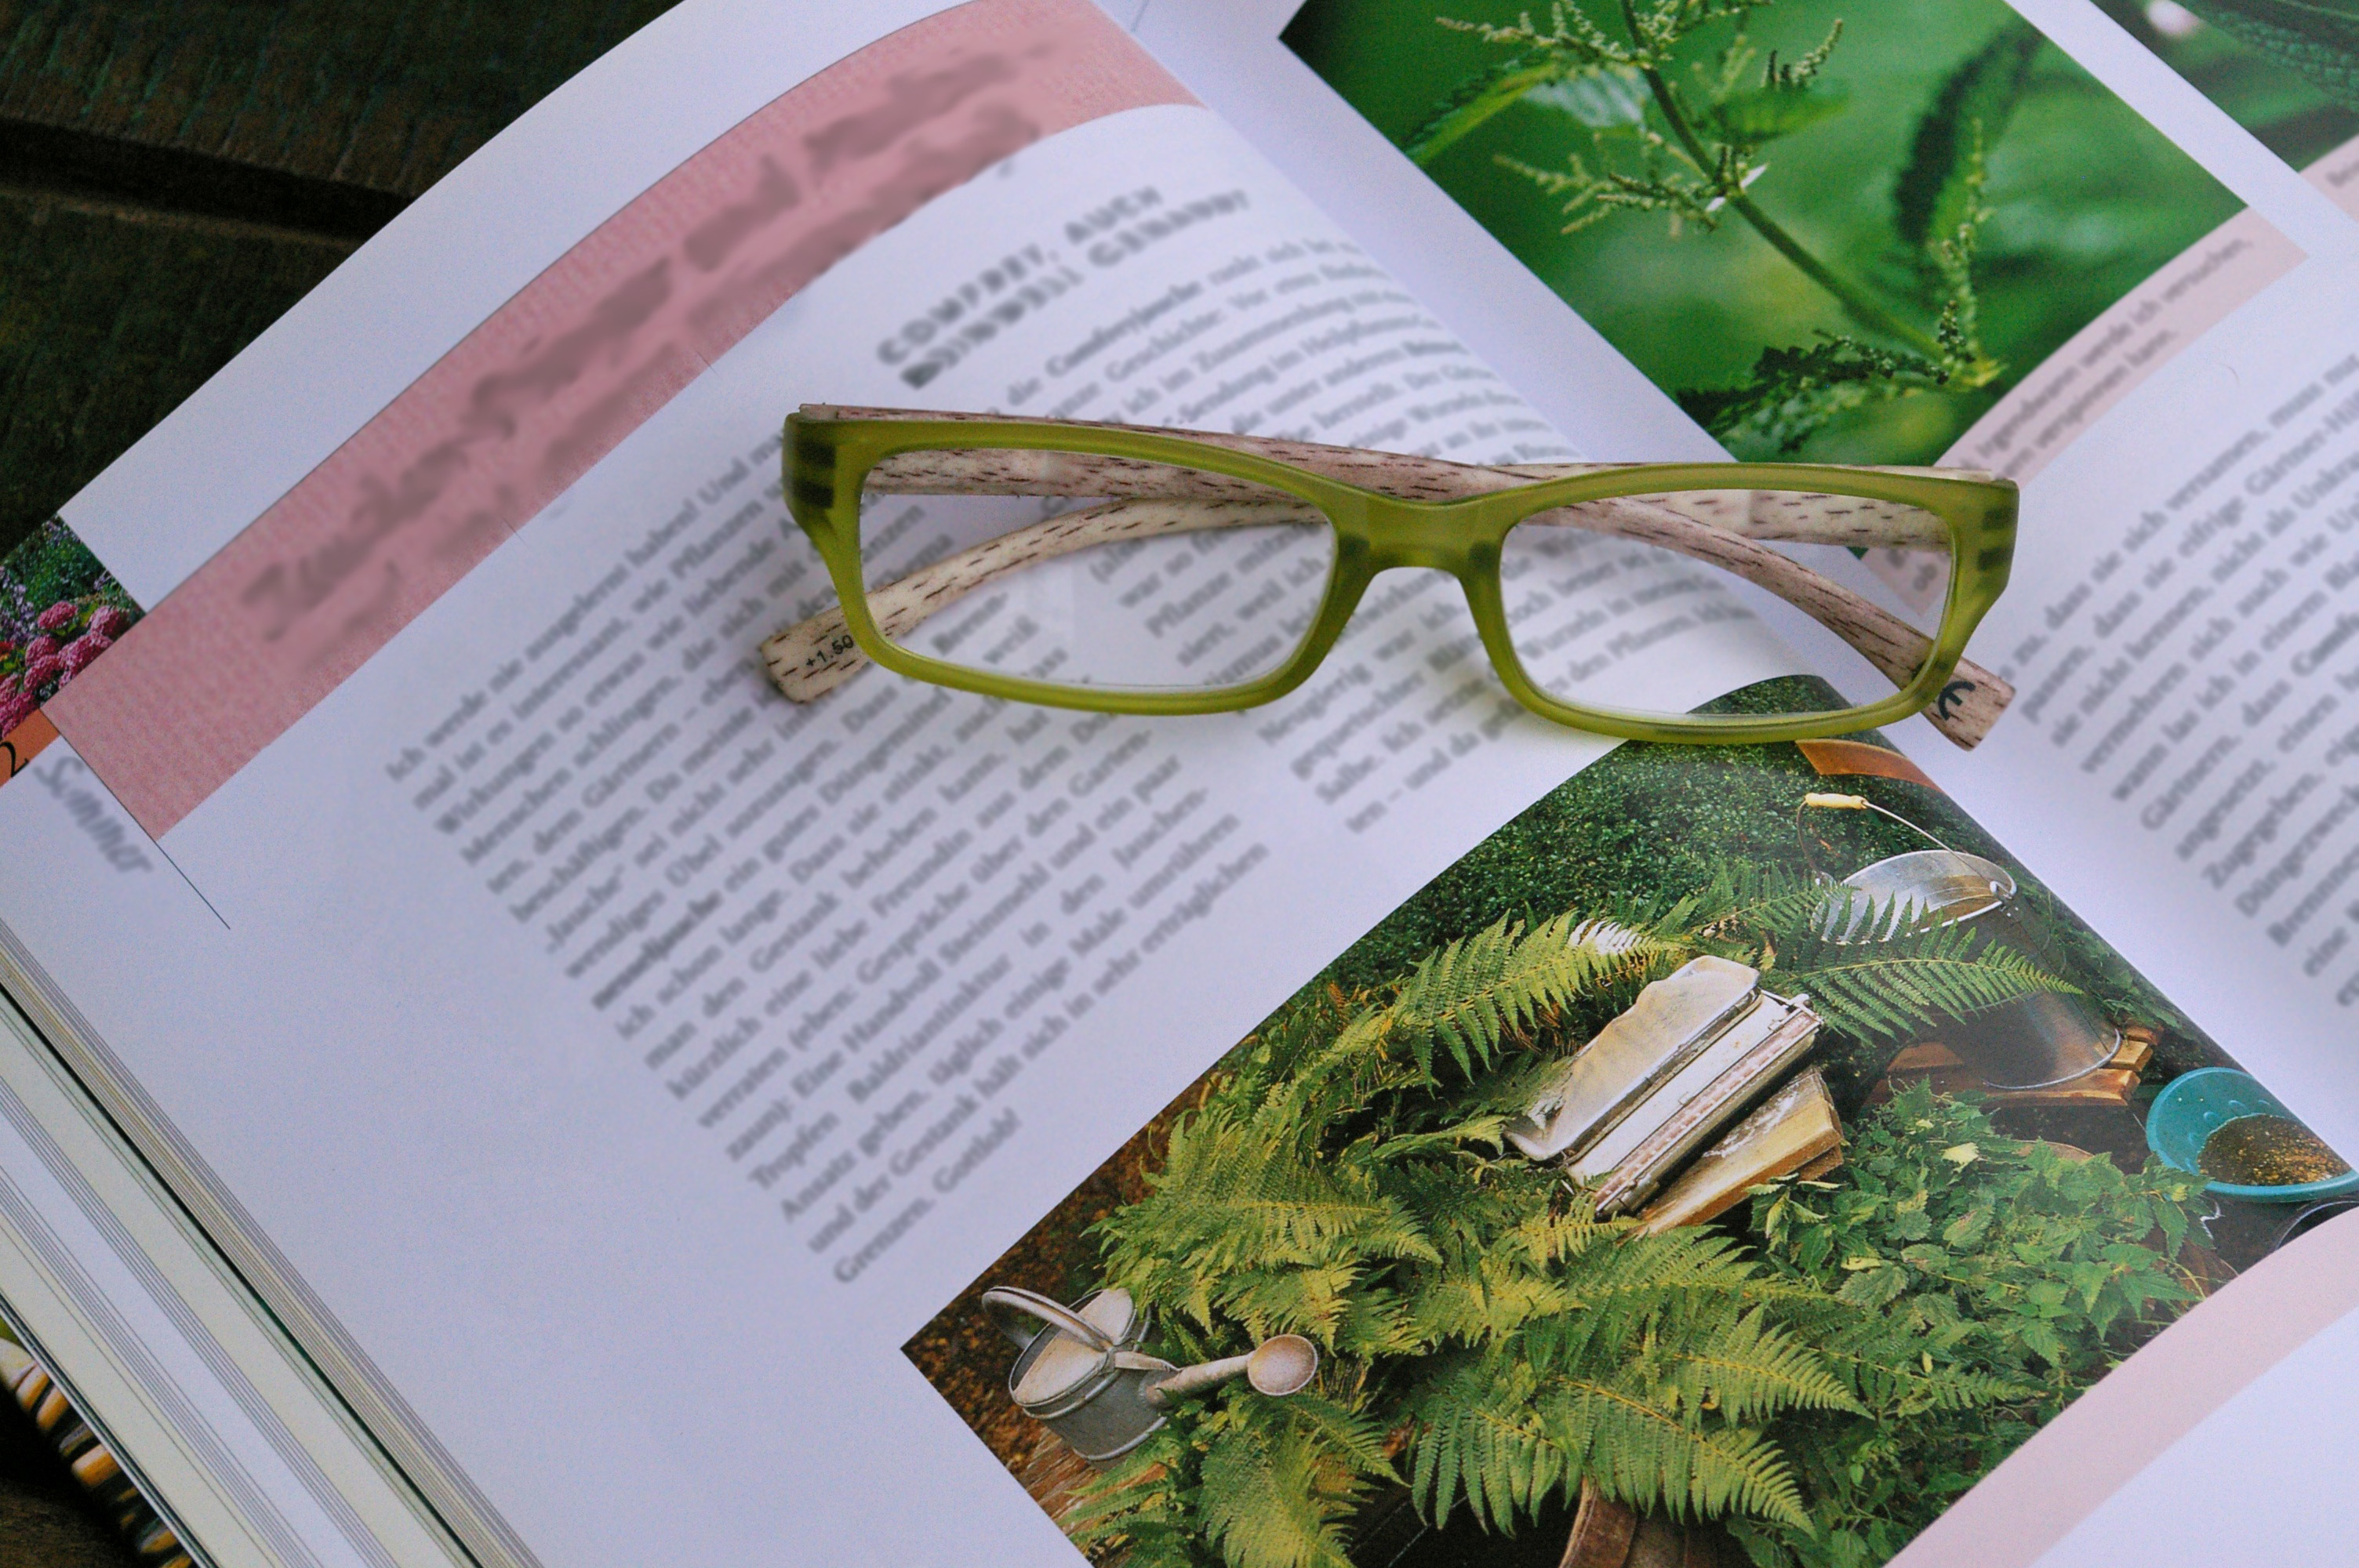 Books and magazines can be invaluable resources for gardeners.